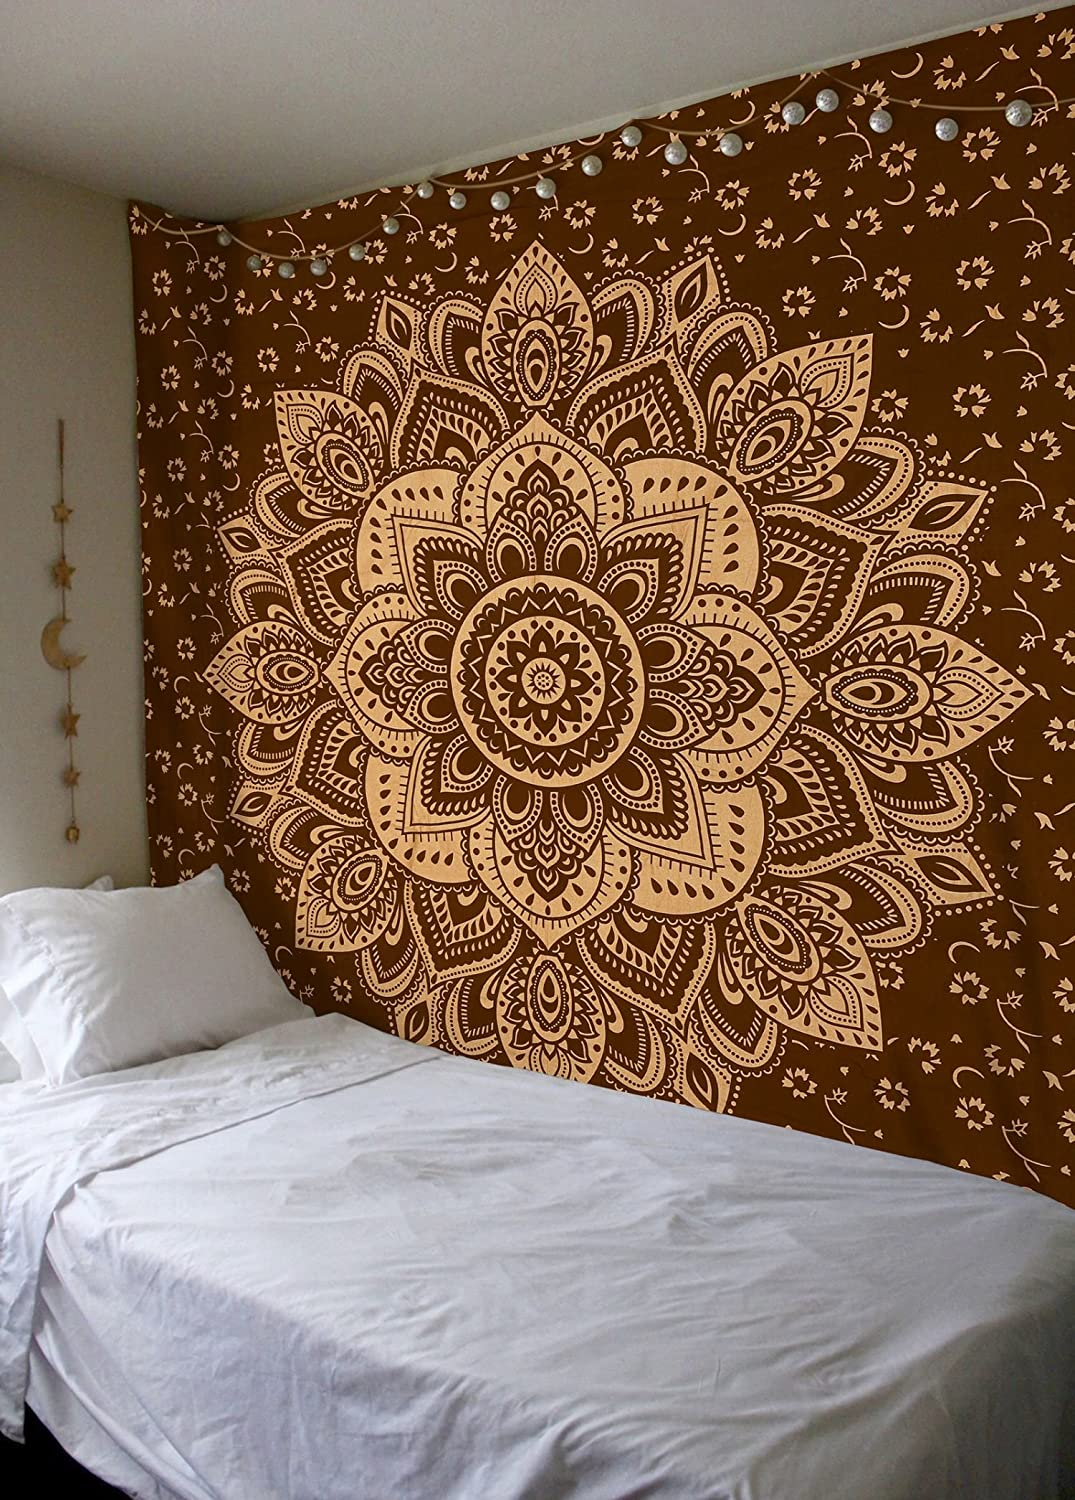 Madhu International Mandala Tapestry Psychedelic Floral Medallion Hippie Queen Tapestries Bohemian Wall Hanging Indian Traditional Design For Living Room Dorm Home Decor 84x90 Inches, Brown Gold